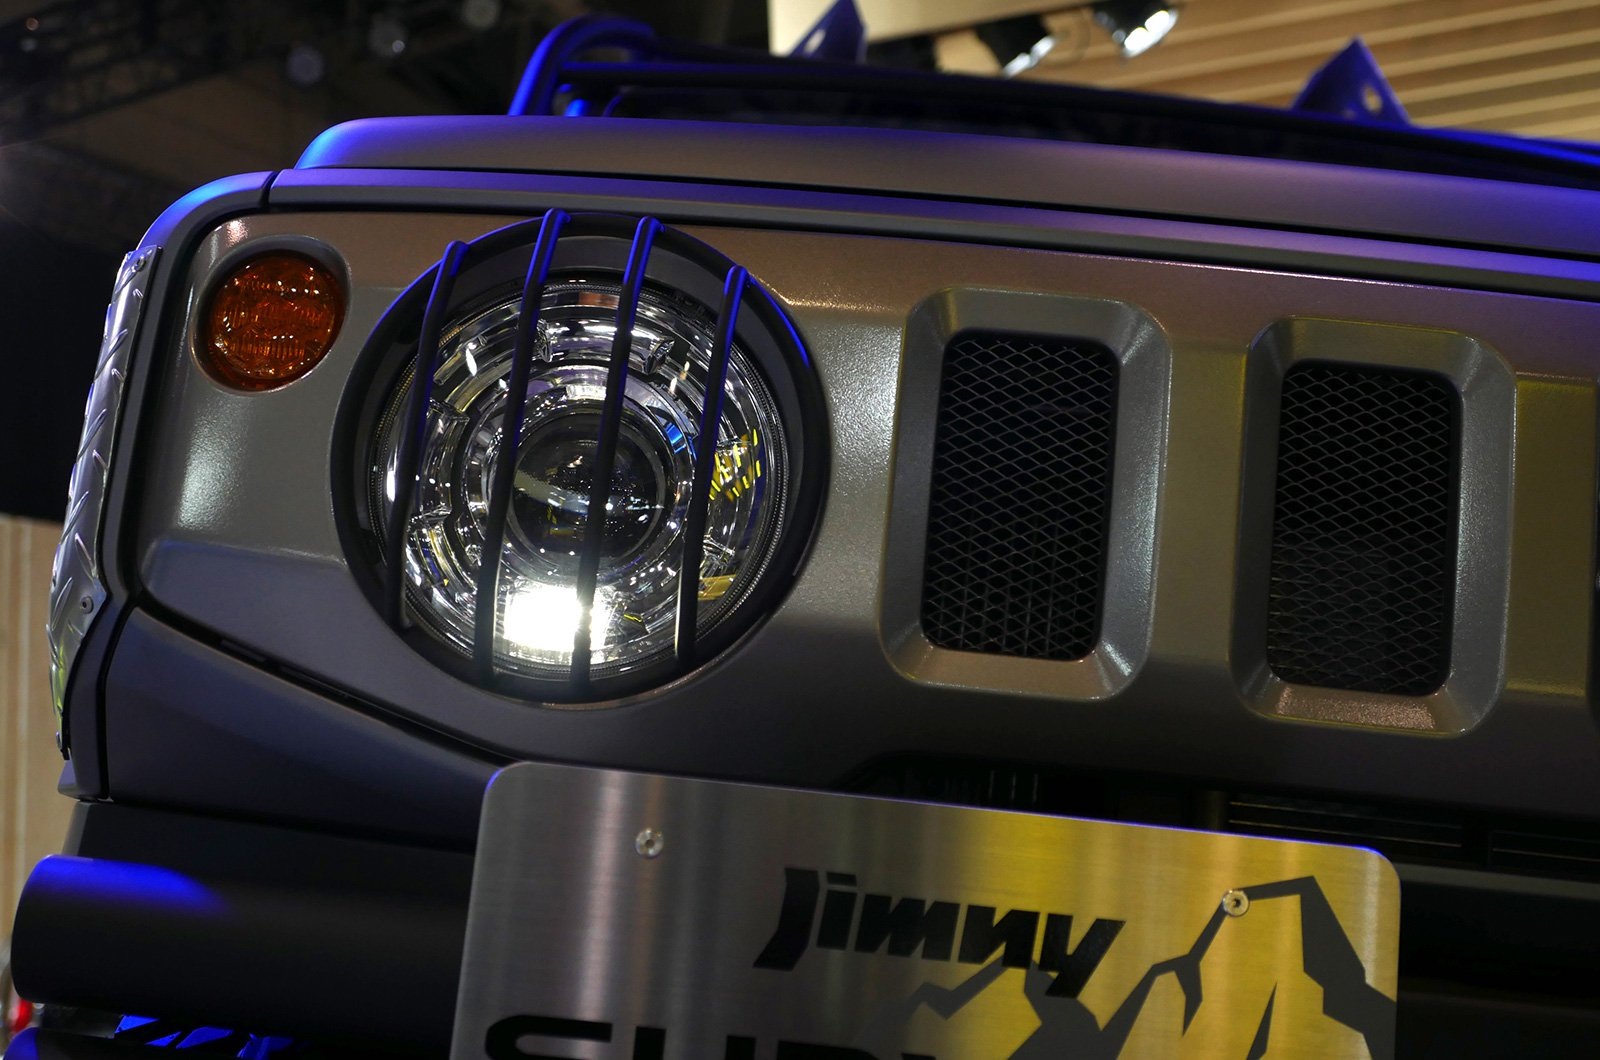 Suzuki Jimny Sierra Pickup Style concept and Jimny Survive concept (9)